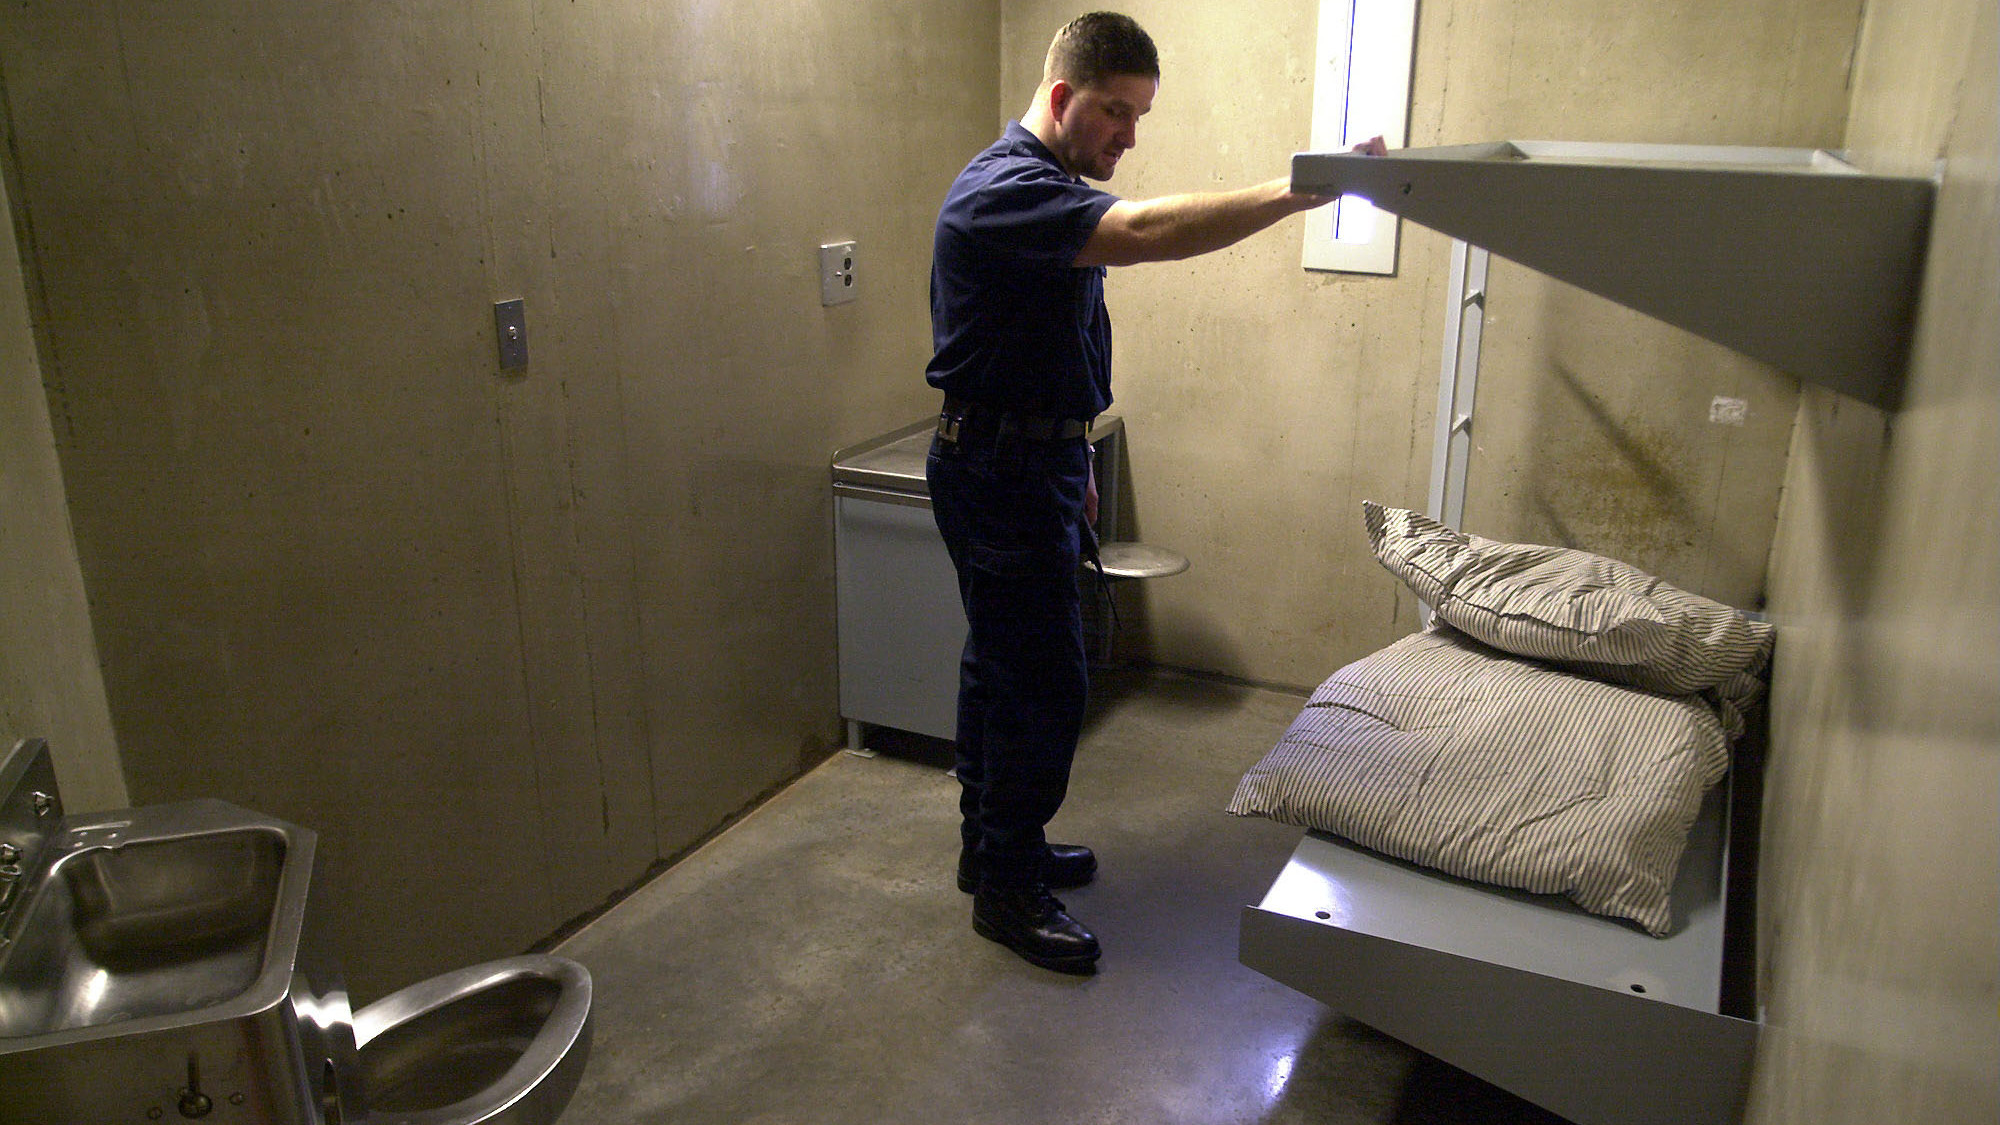 Advocates Push To Bring Solitary Confinement Out Of The Shadows